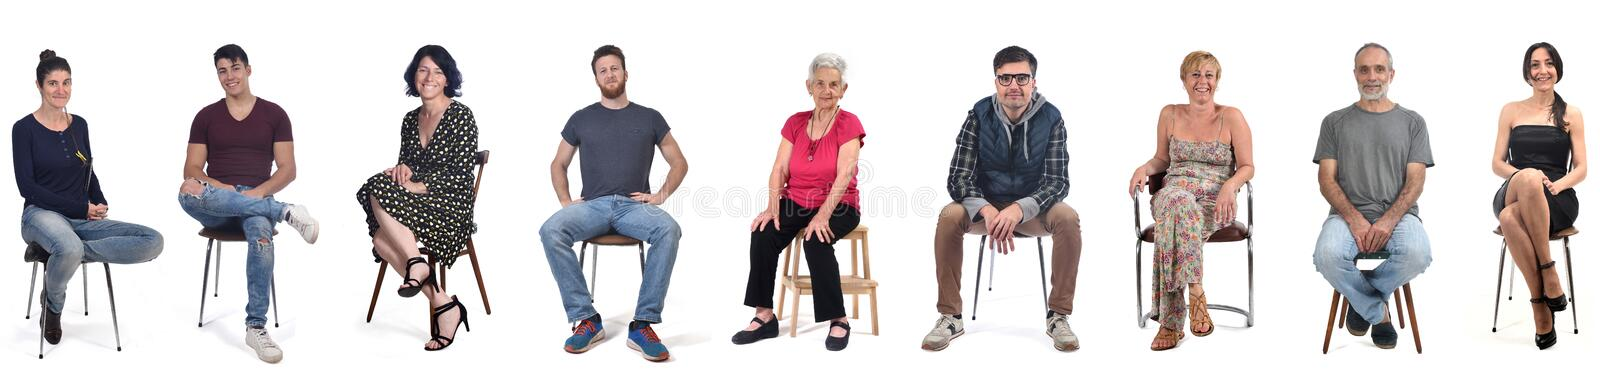 Group of people sitting on white background royalty free stock photography